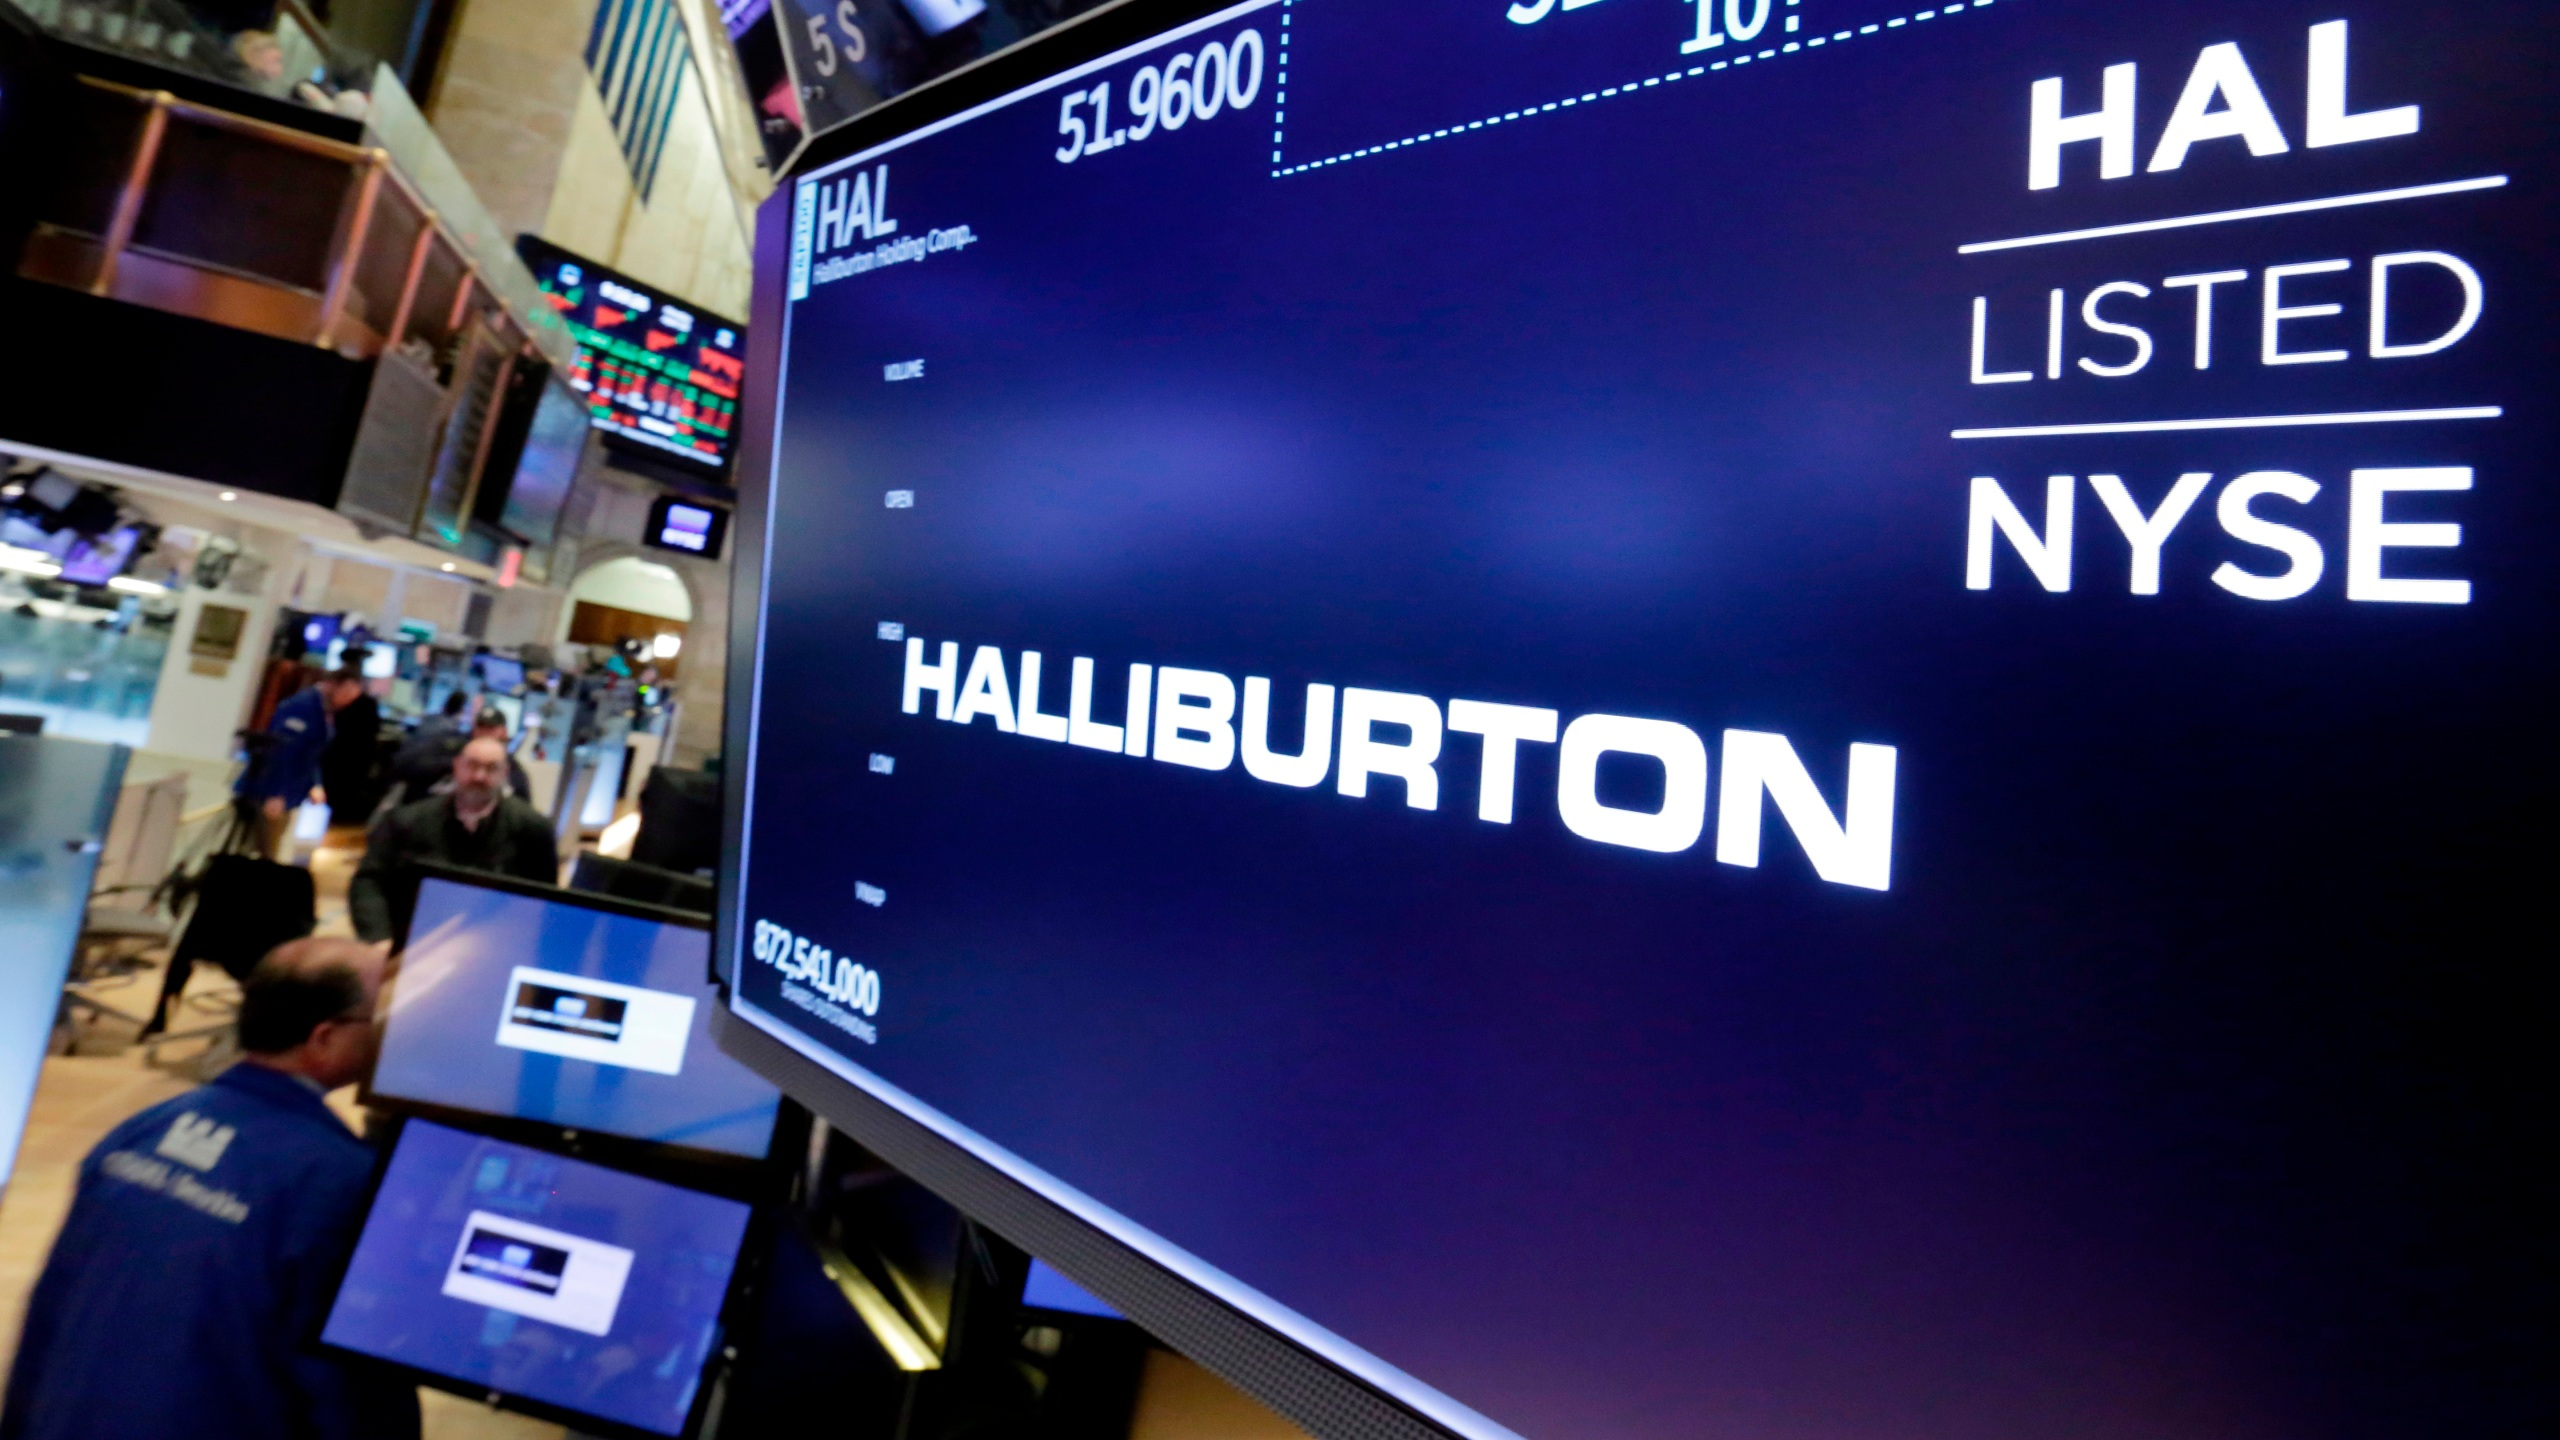 The logo for Halliburton appears above a trading post on the floor of the New York Stock Exchange, Monday, April 23, 2018. (AP Photo/Richard Drew)